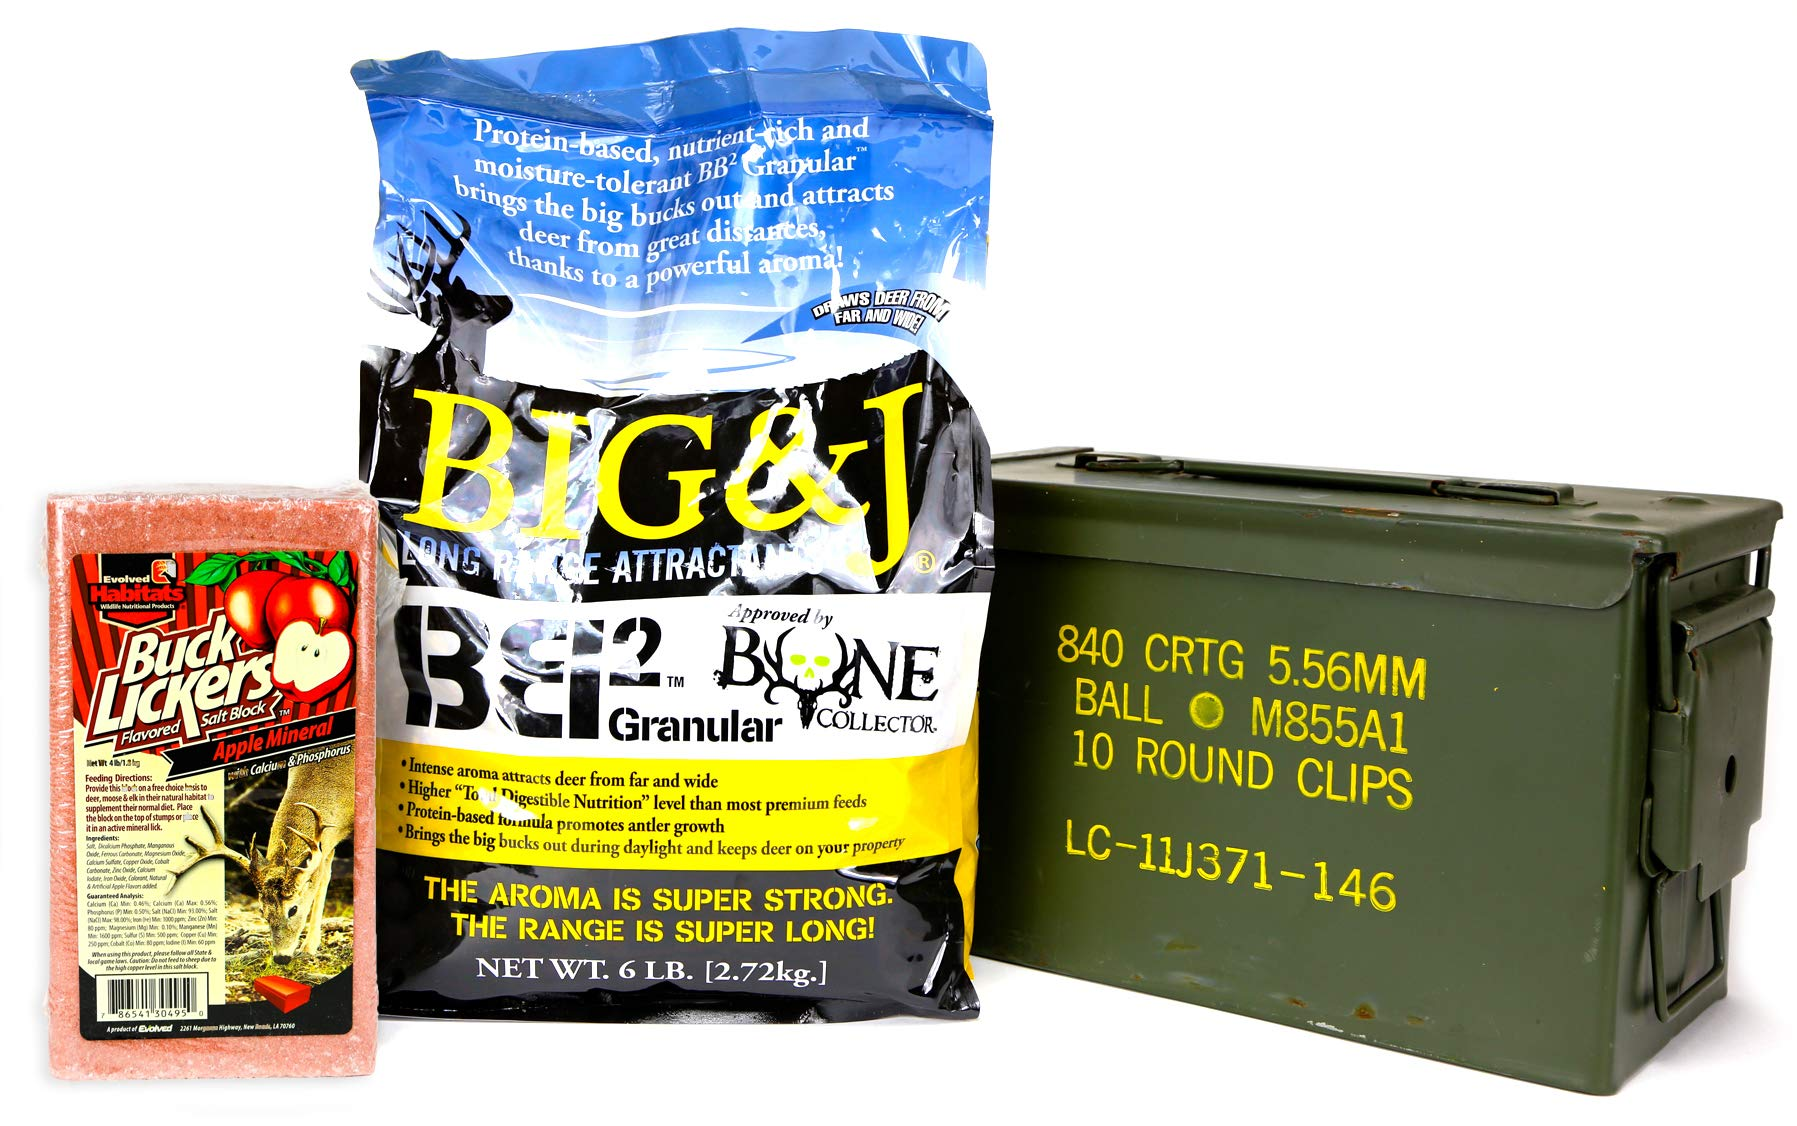 Big & J BB2 Granular Long Range Deer Feed/Attractant - 6 LB & Evolved Habitats Buck Lickers Apple Flavored Salt Brick - 4 LB Bundle Set & US Military Previously Issued 50-Caliber Ammo Box (3 Items)